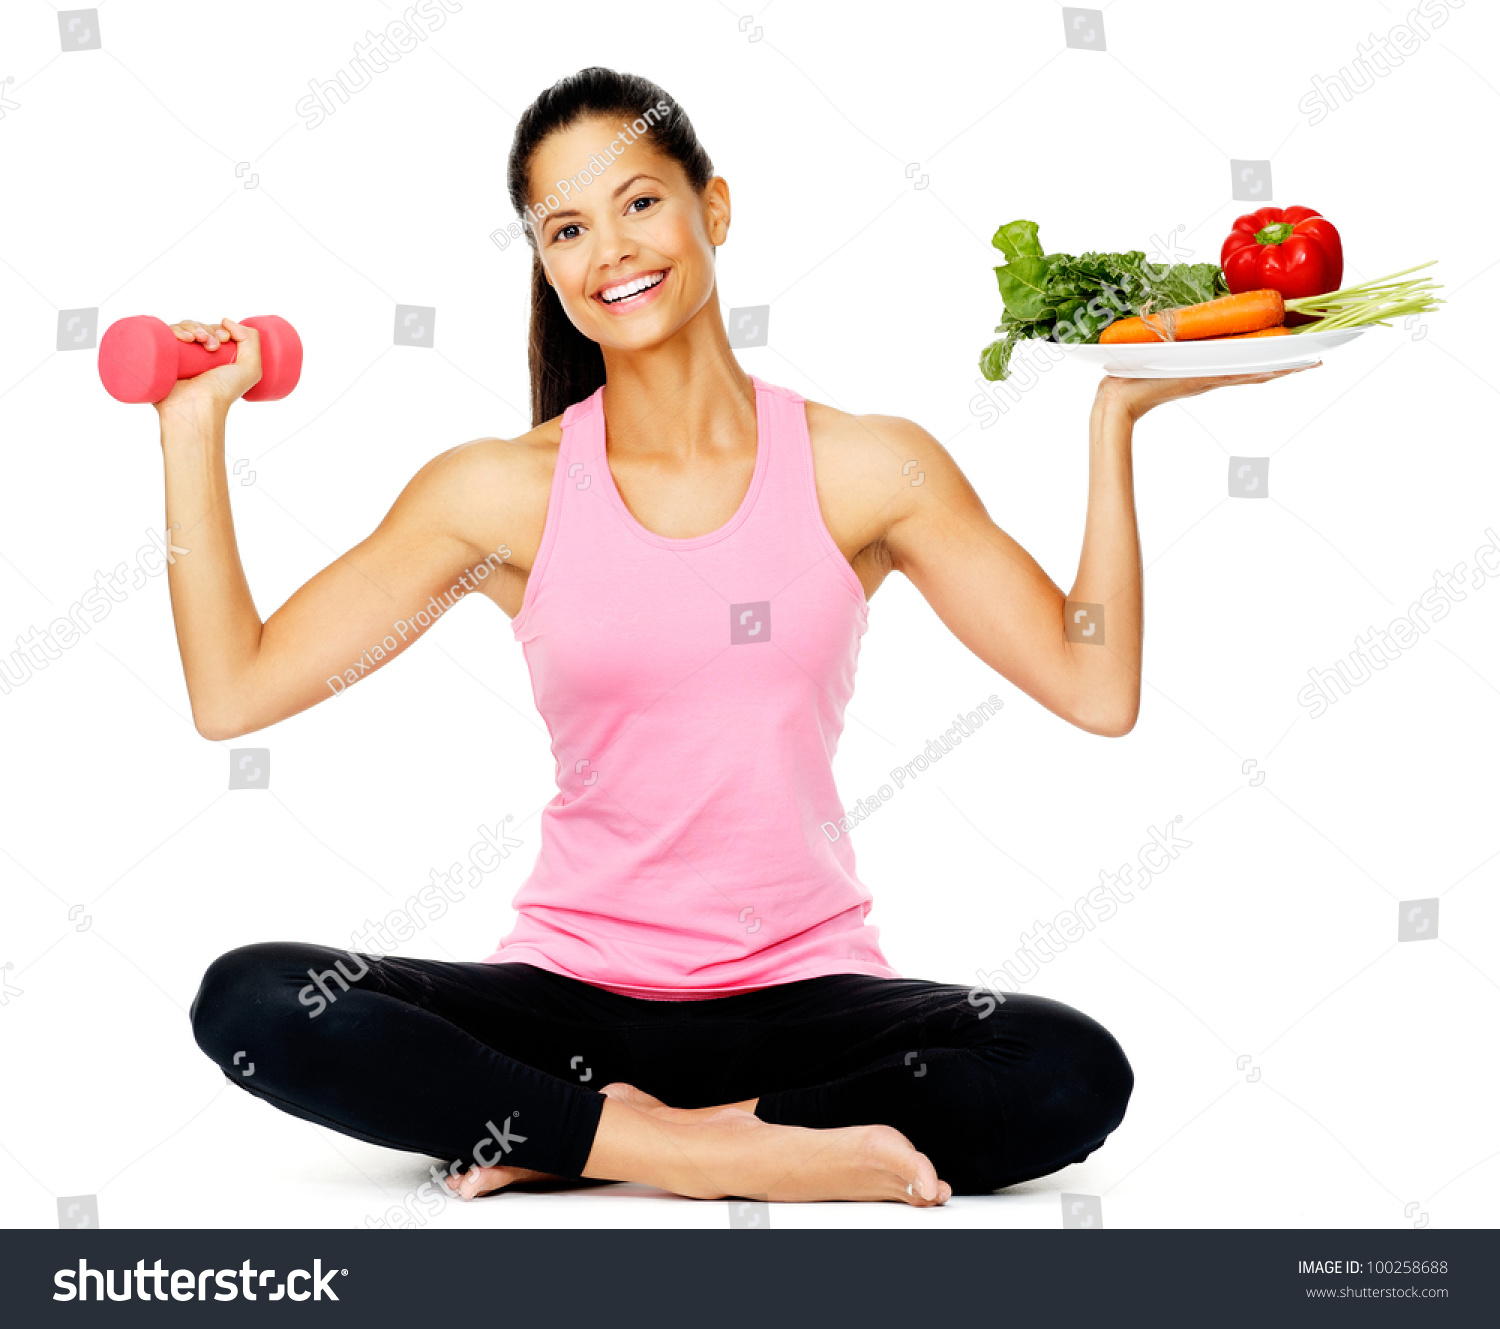 exercise promotes healthy lifestyle essay It is essential for us to develop a healthy lifestyle by doing weight-bearing  exercise like walking to prevent osteoporosis last but not least,.